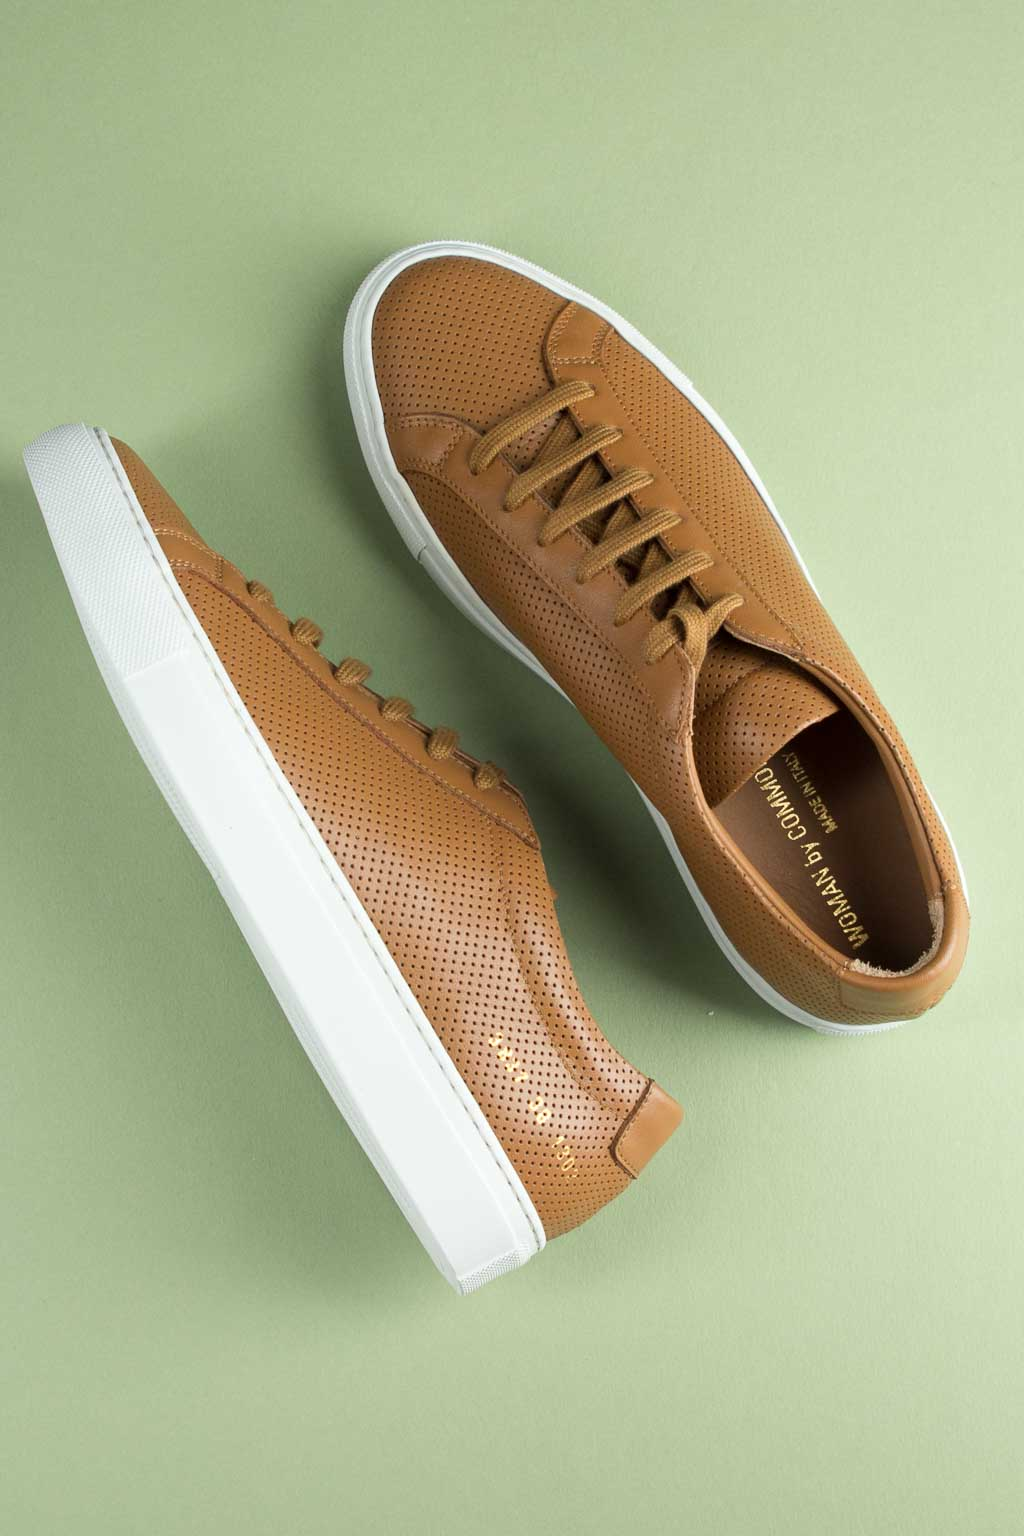 Common Projects Original Achilles Perf. Low W/White Sole - Tan